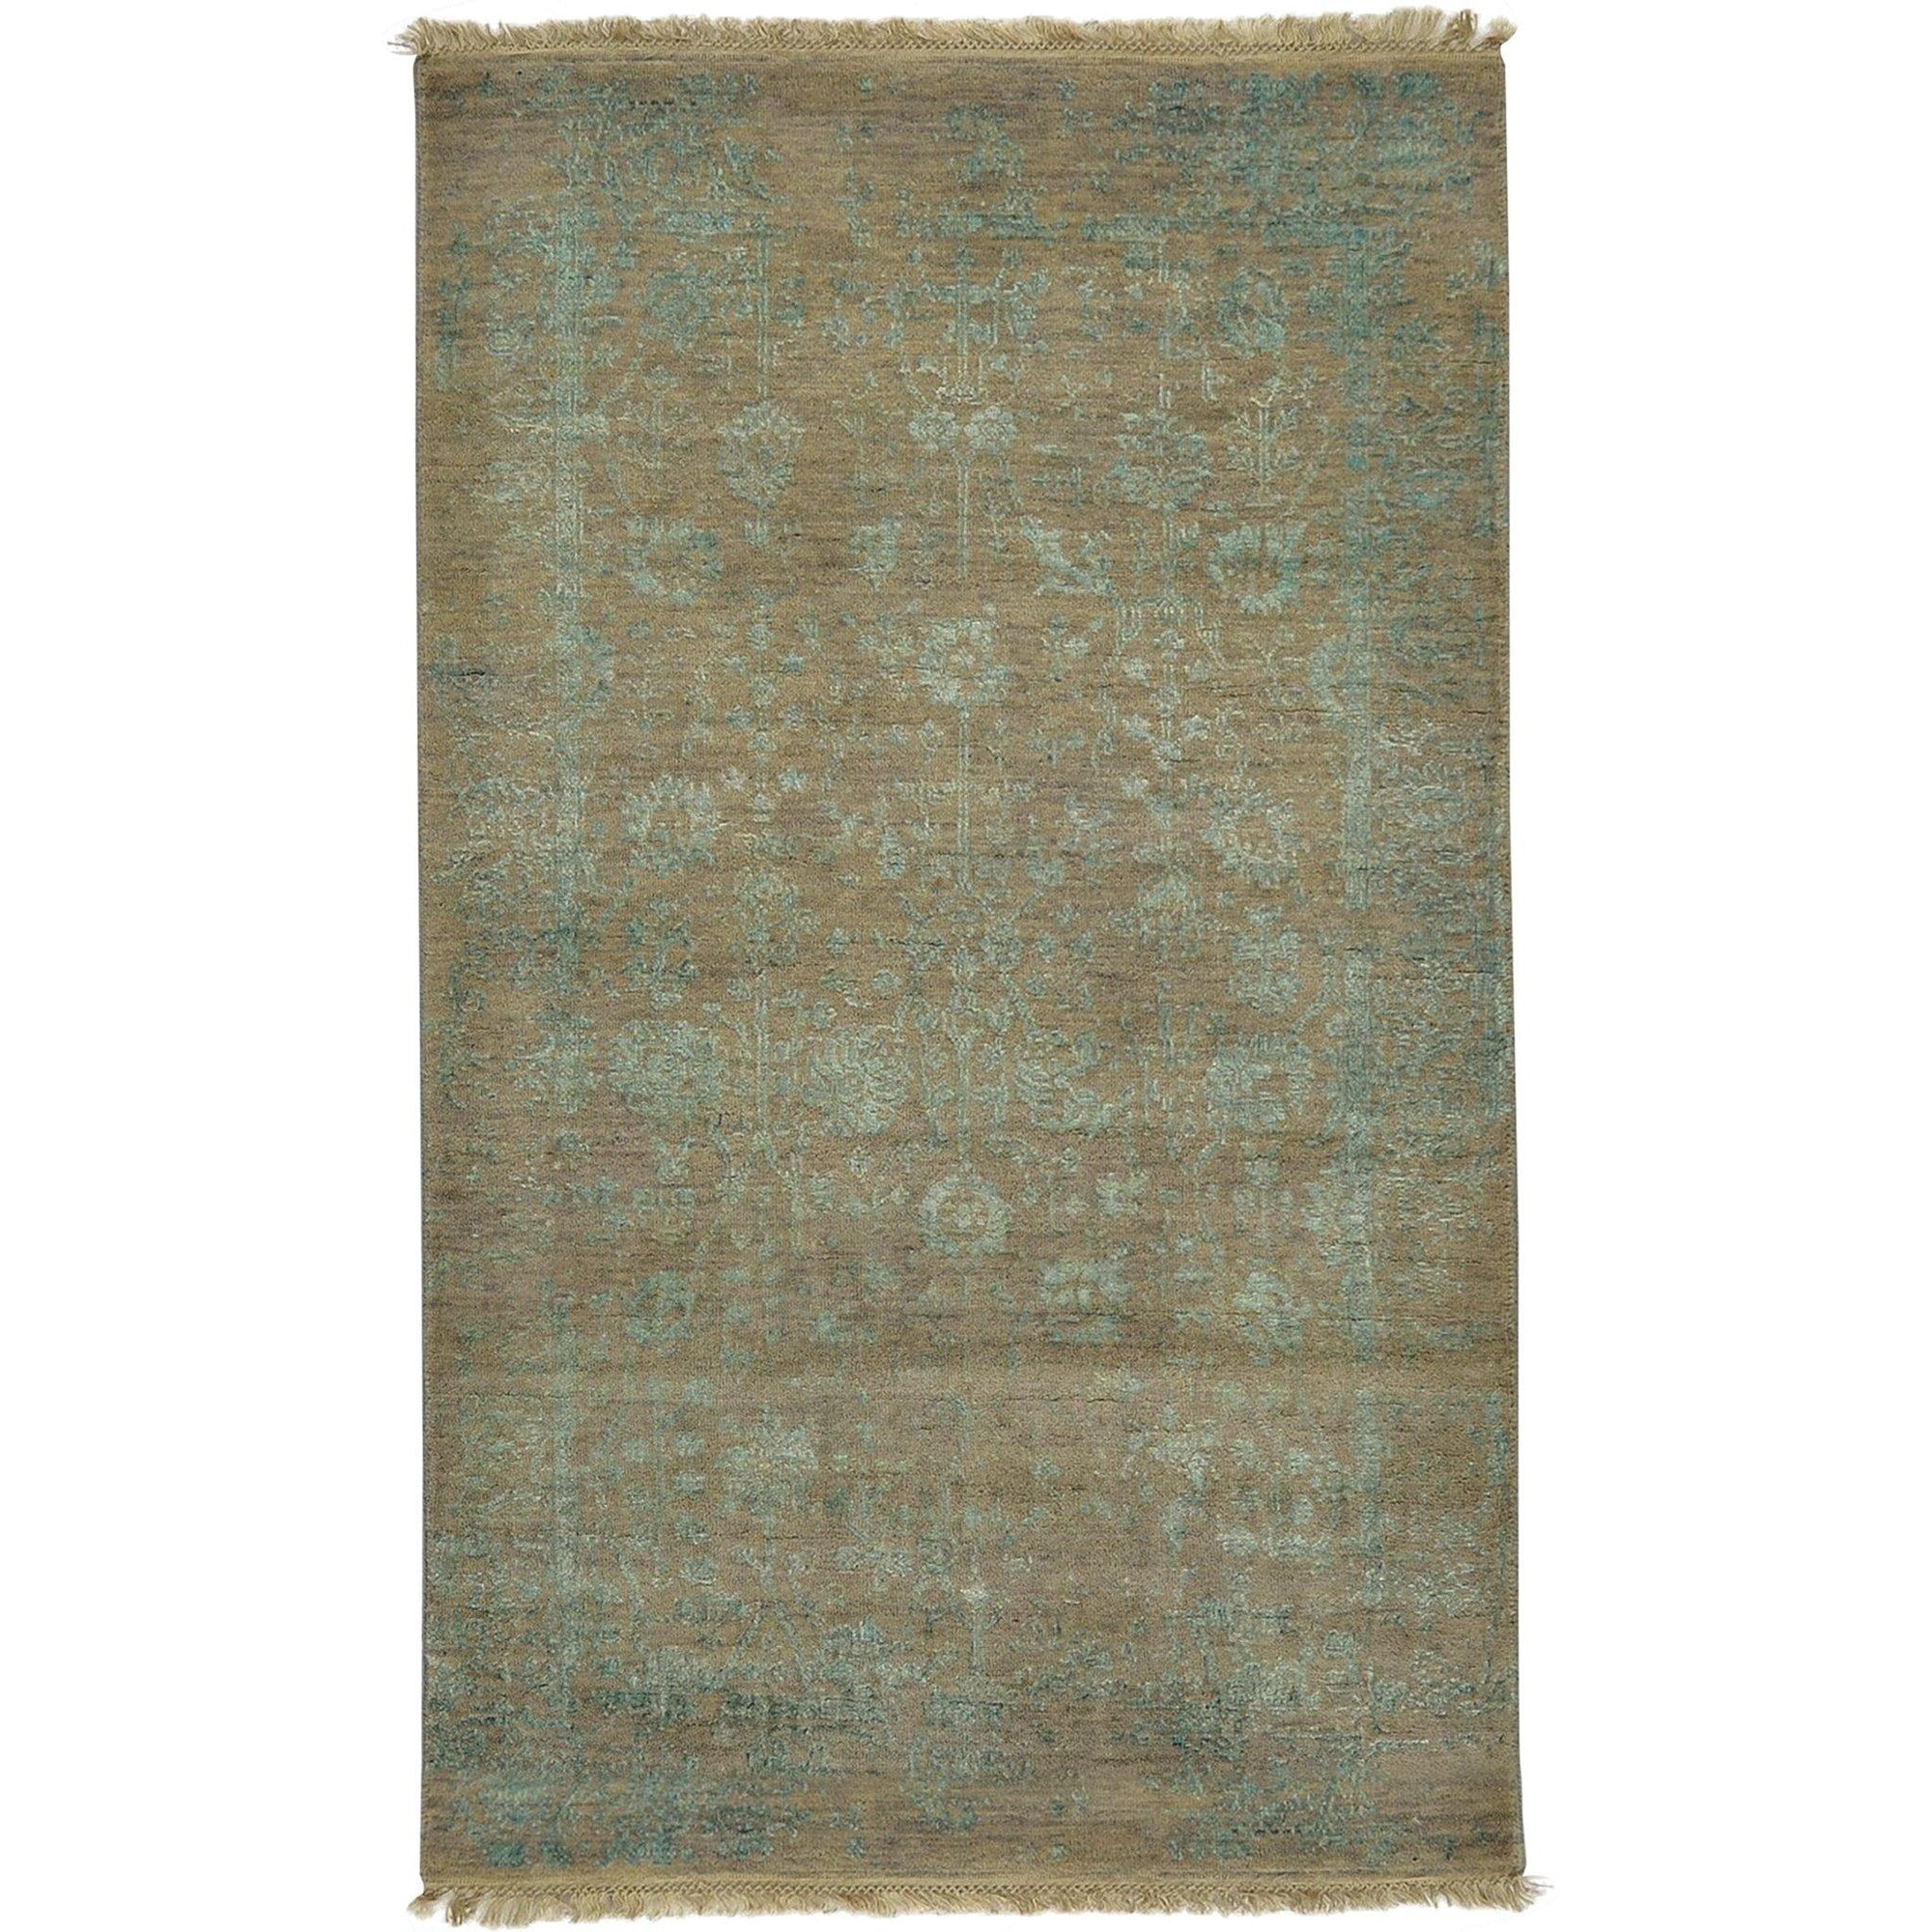 Fine Hand-knotted Galaxy Wool & Bamboo Silk Small Rug 92cm x 157cm Persian-Rug | House-of-Haghi | NewMarket | Auckland | NZ | Handmade Persian Rugs | Hand Knotted Persian Rugs